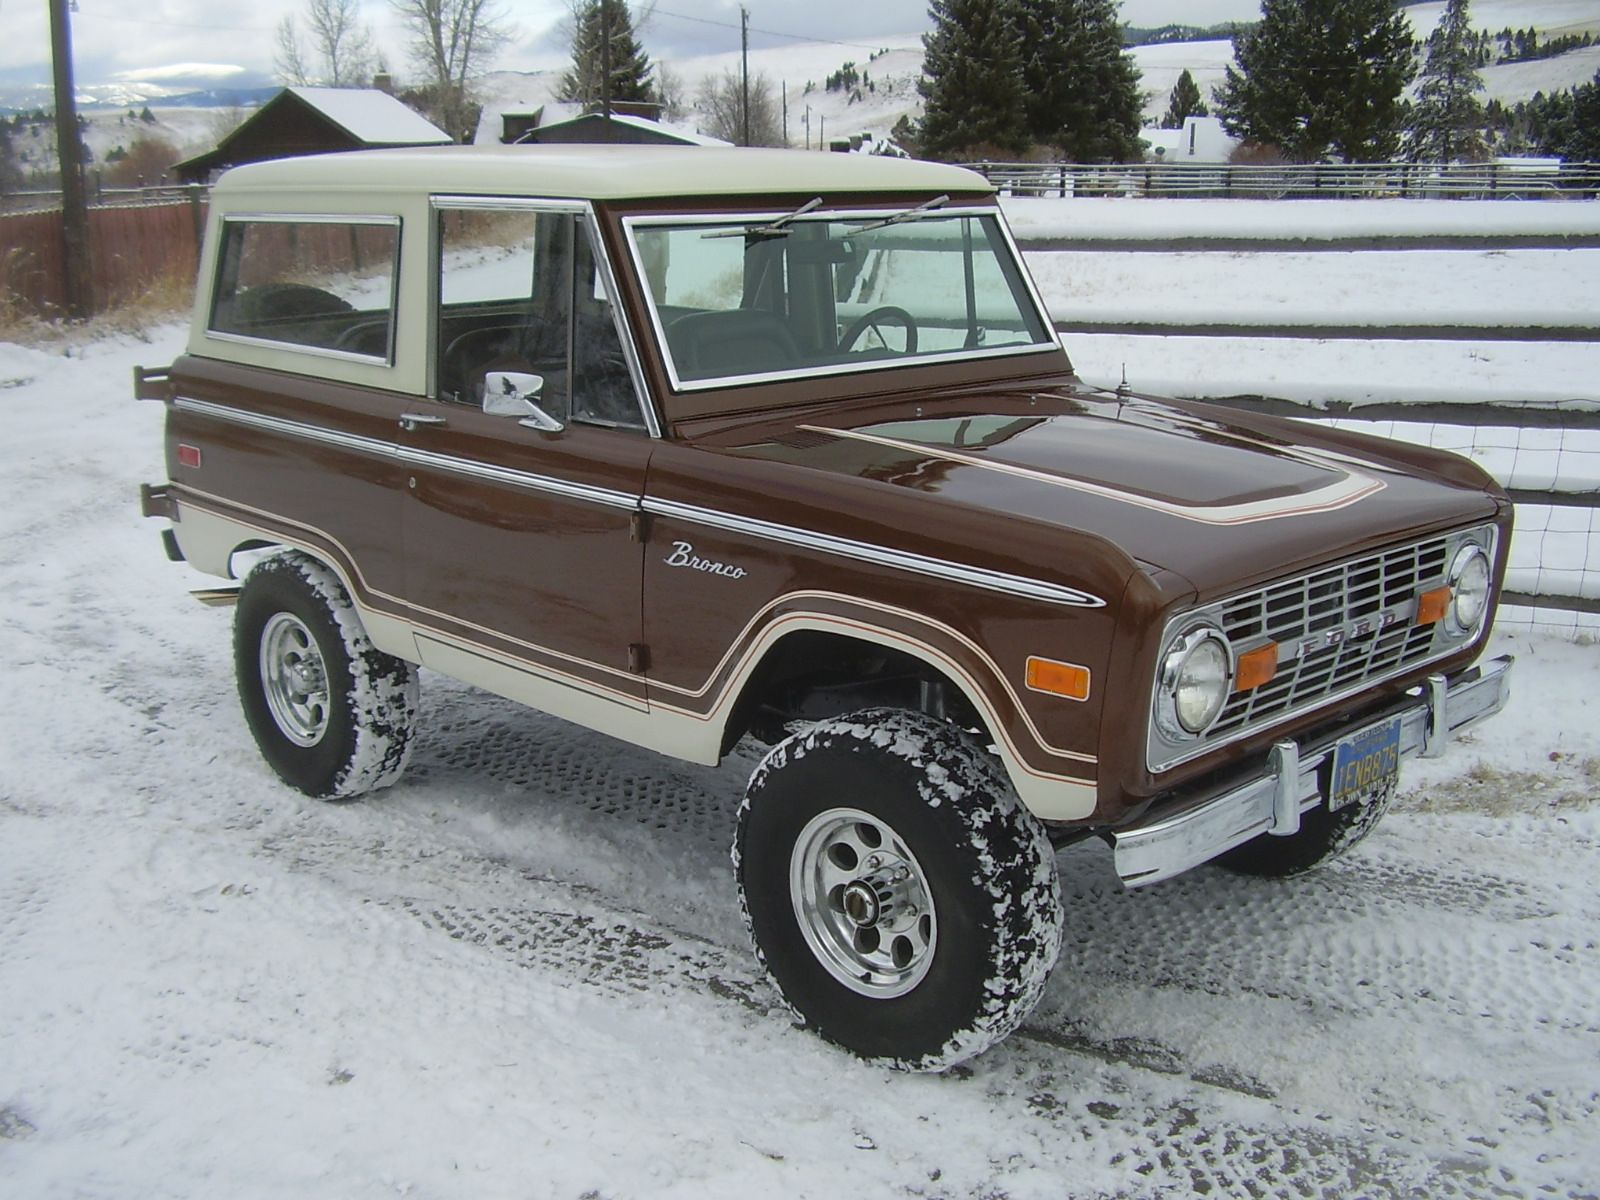 Dark Brown Classic Ford Bronco Uncut Gary Robinson We Could Do Some Details Like This One Classic Ford Broncos Old Ford Bronco Ford Bronco